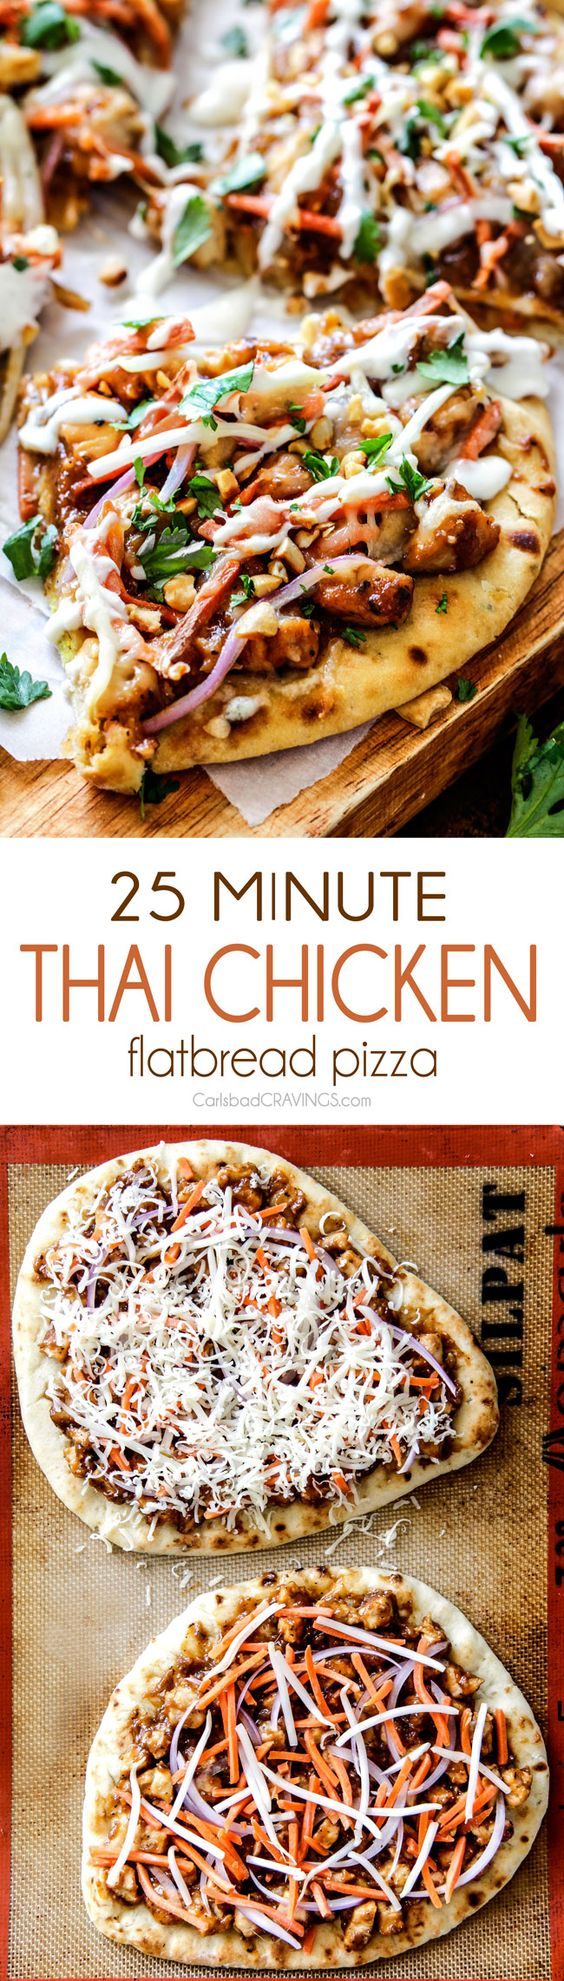 CPK inspired 25 Minute Thai Chicken Flatbread Pizza smothered in easy tangy peanut sauce, tender chicken, mozzarella cheese, crunchy carrots, sprouts and peanuts and the option of creamy coconut yogurt drizzle - an amazing flavor bursting quick dinner at a fraction of the cost.